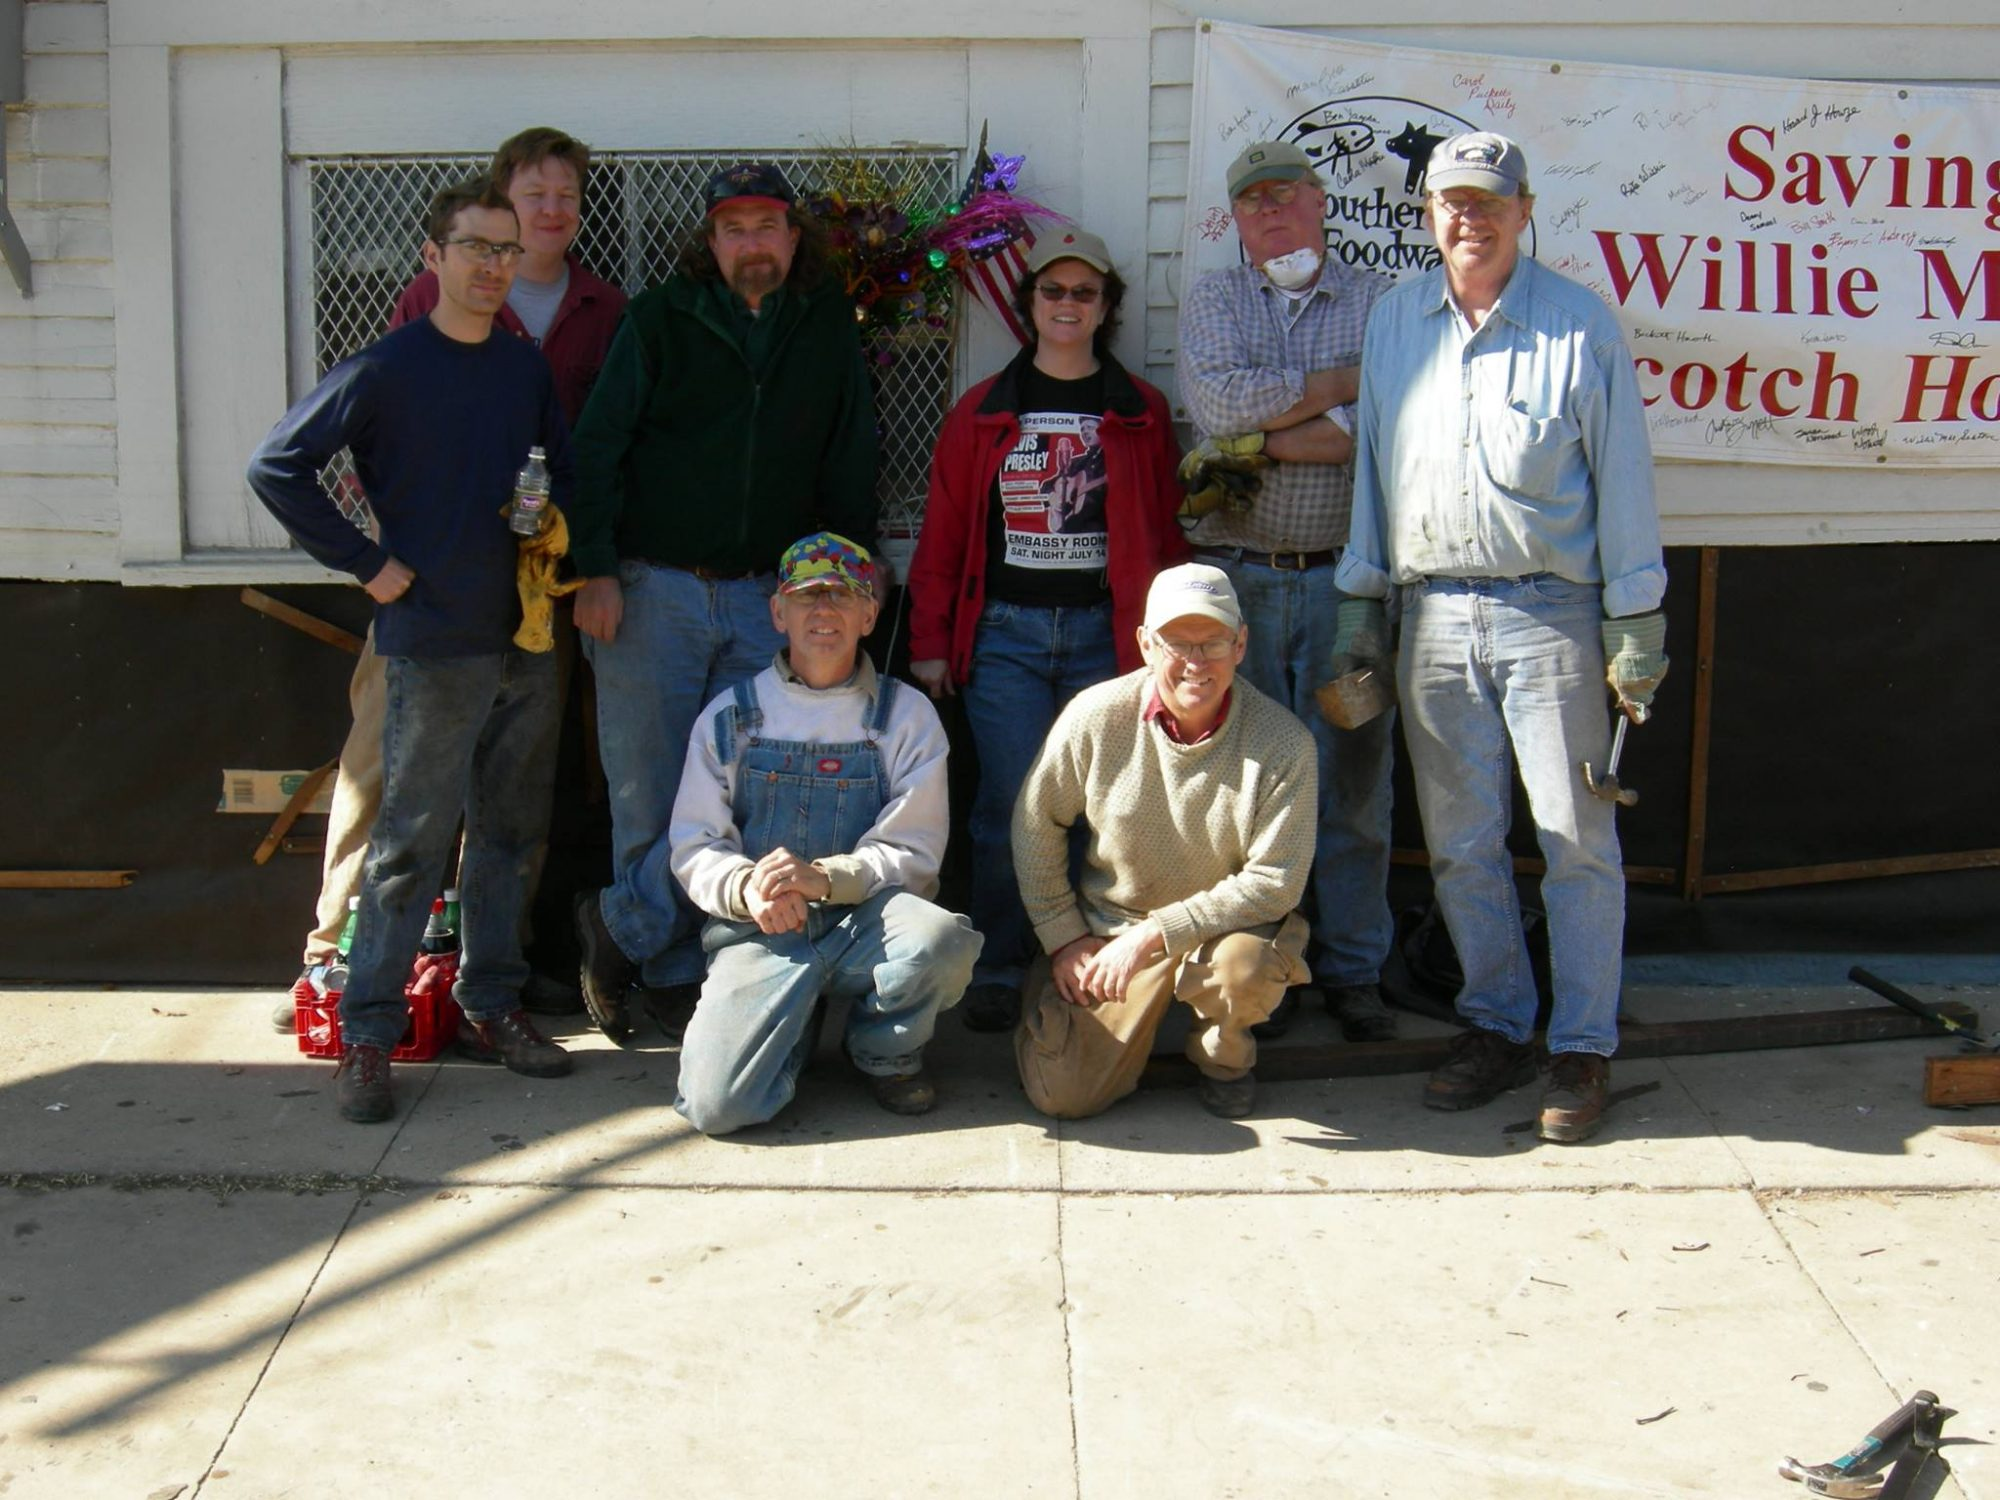 Southern Foodways Alliance volunteers to help rebuilt Willie Mae's Scotch House in New Orleans